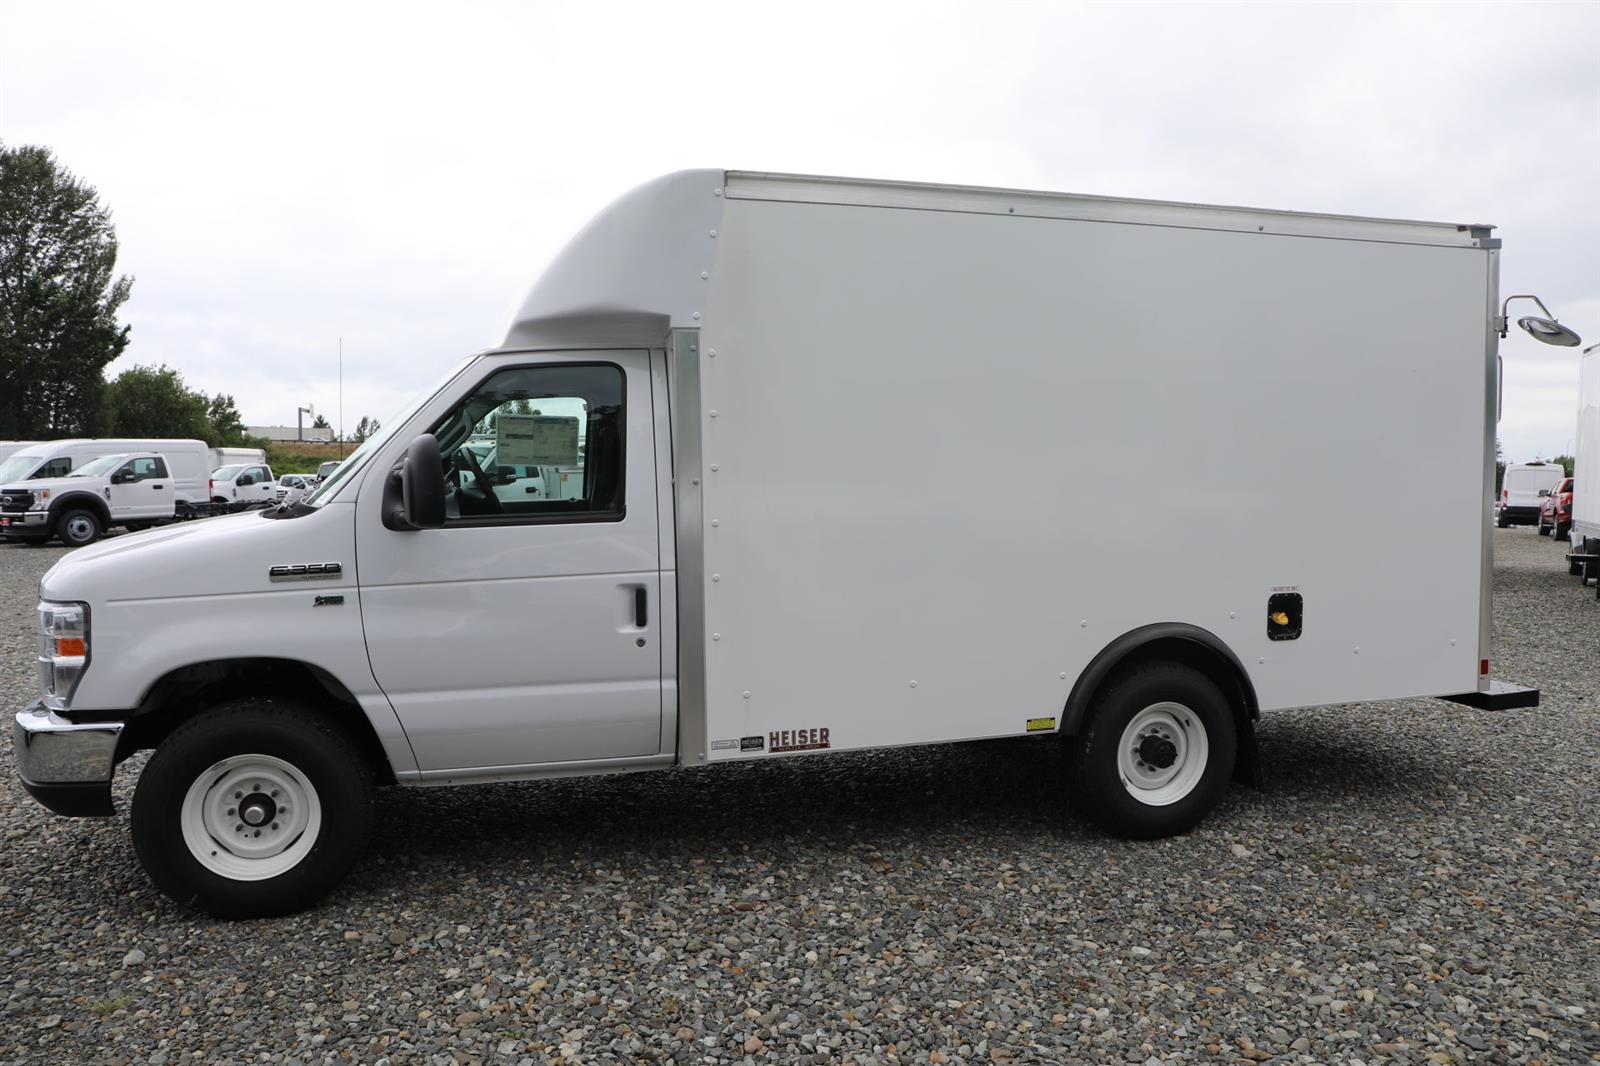 New 2019 Ford E-350 Cutaway Van for sale in Kent. WA | #E9453